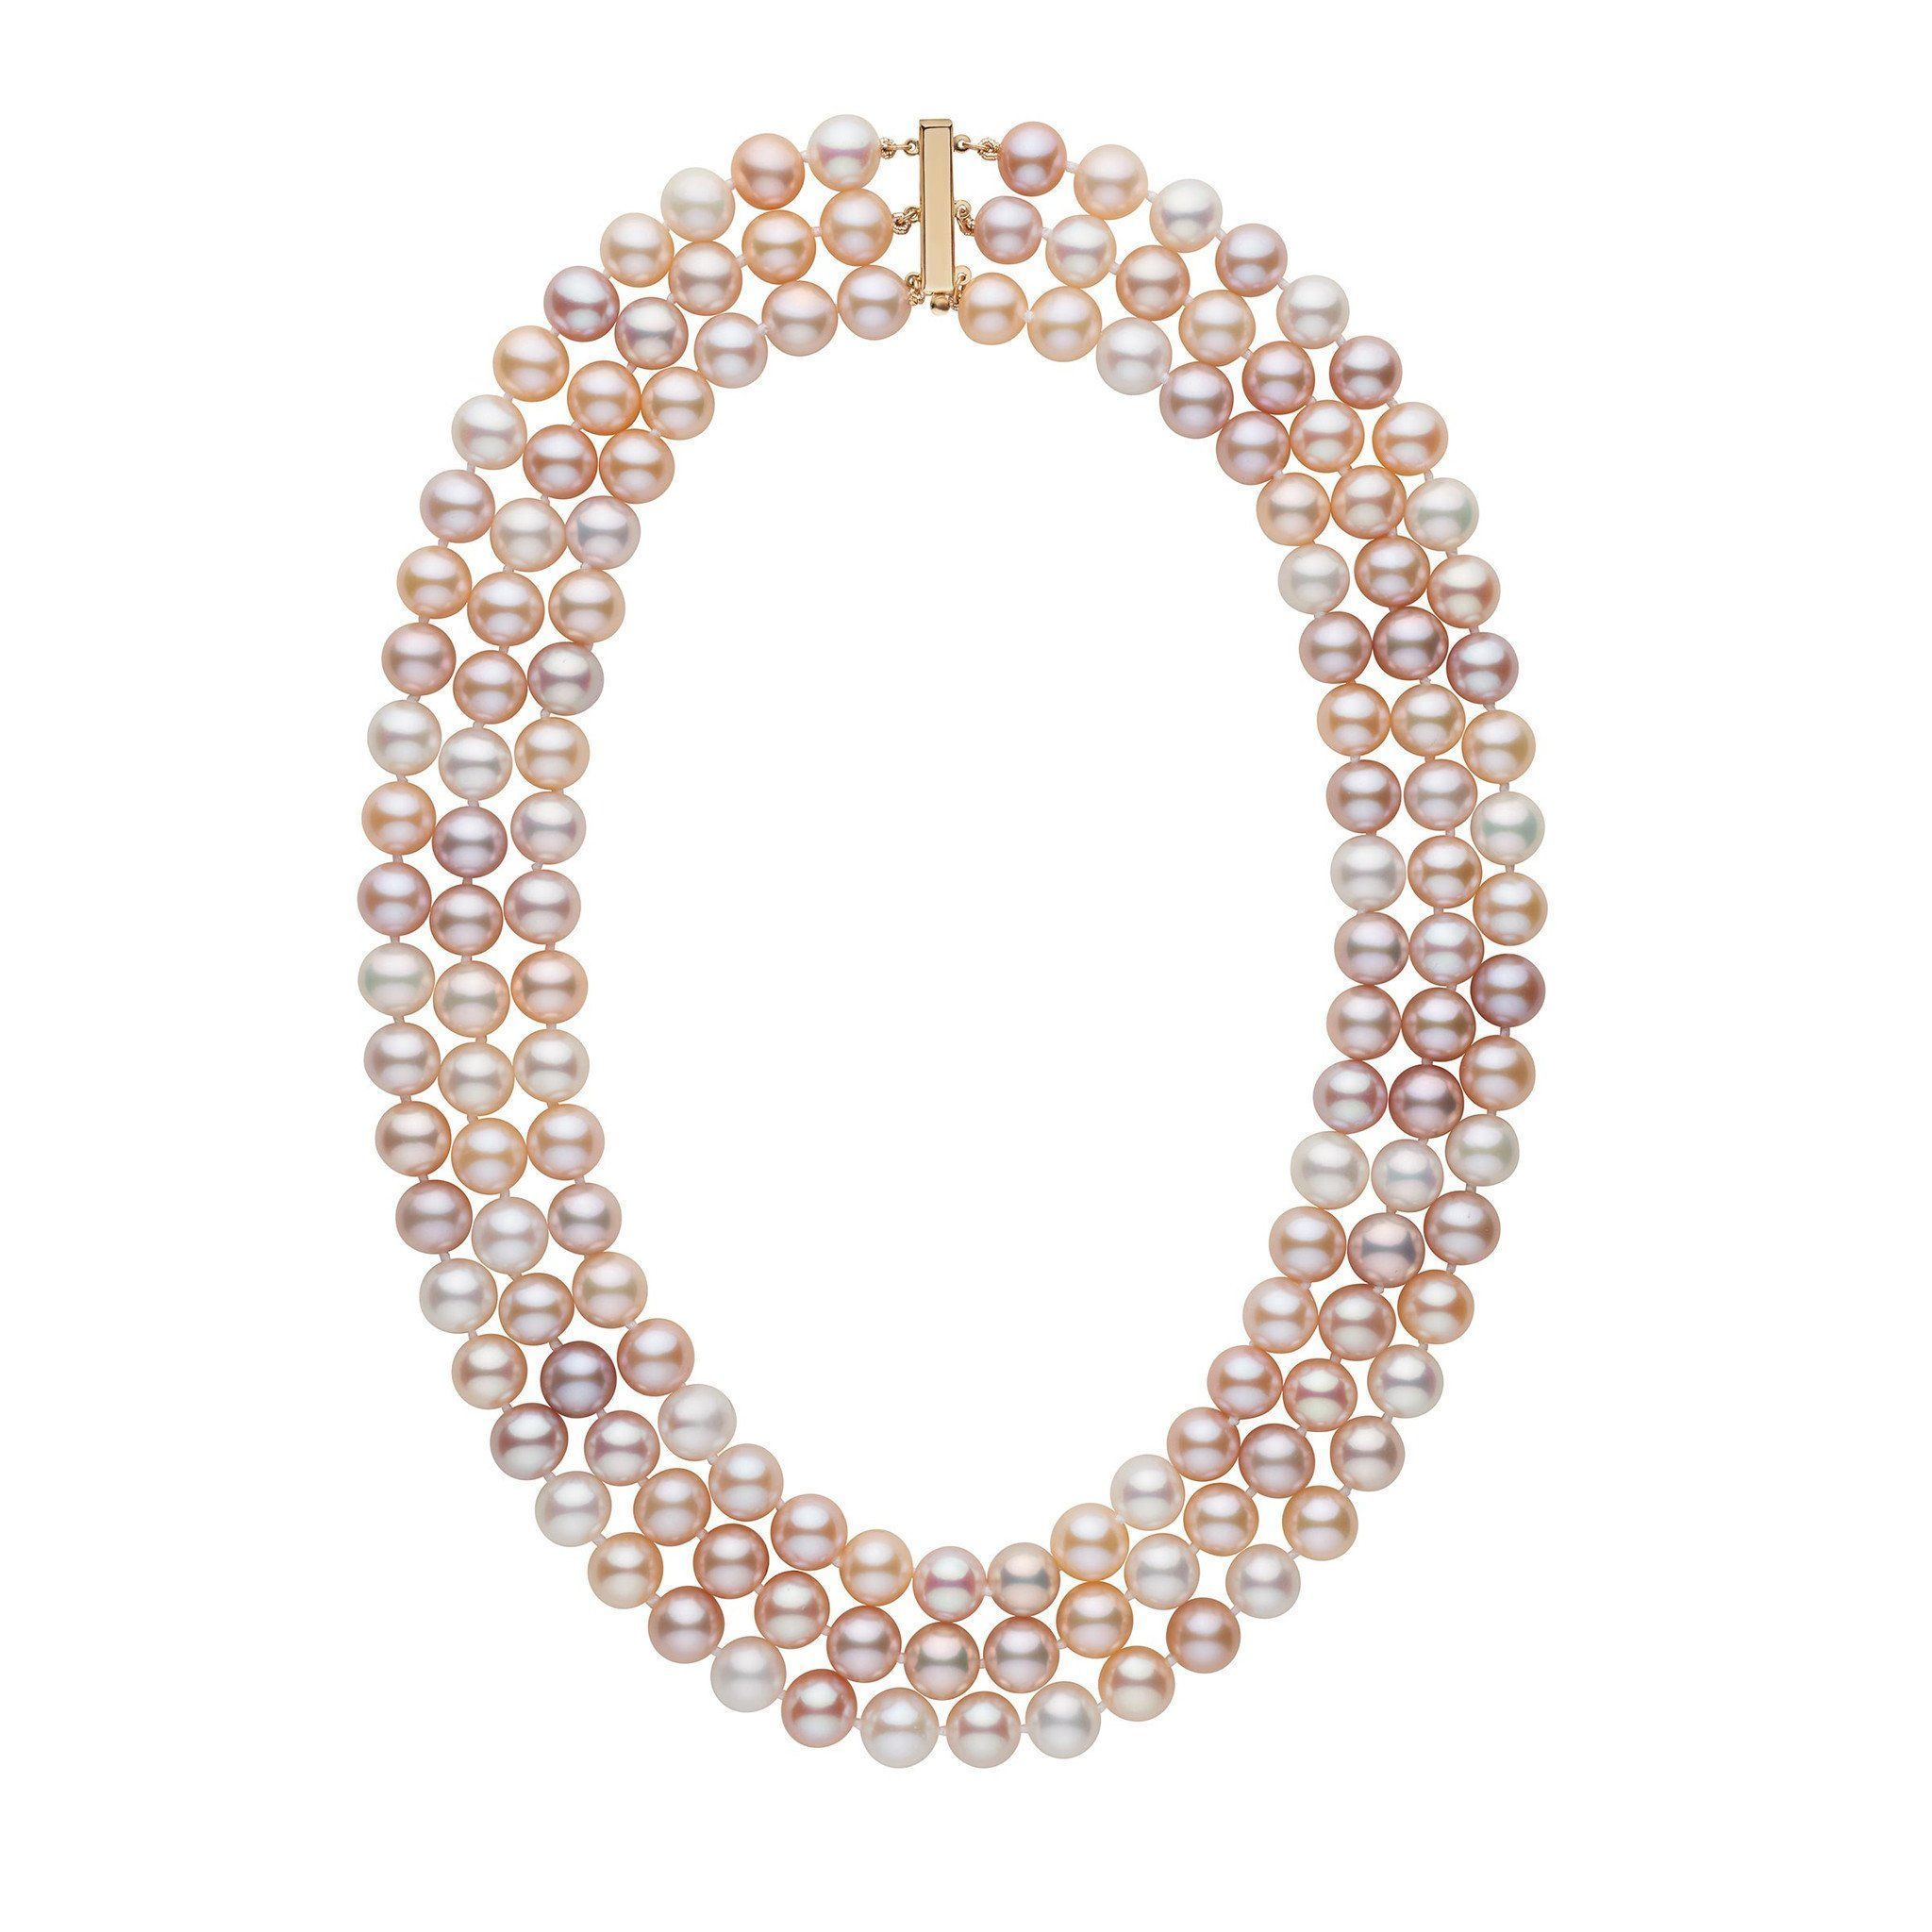 Triple Strand 8.5-9.0 mm AAA Multicolor Freshwater Cultured Pearl Necklace